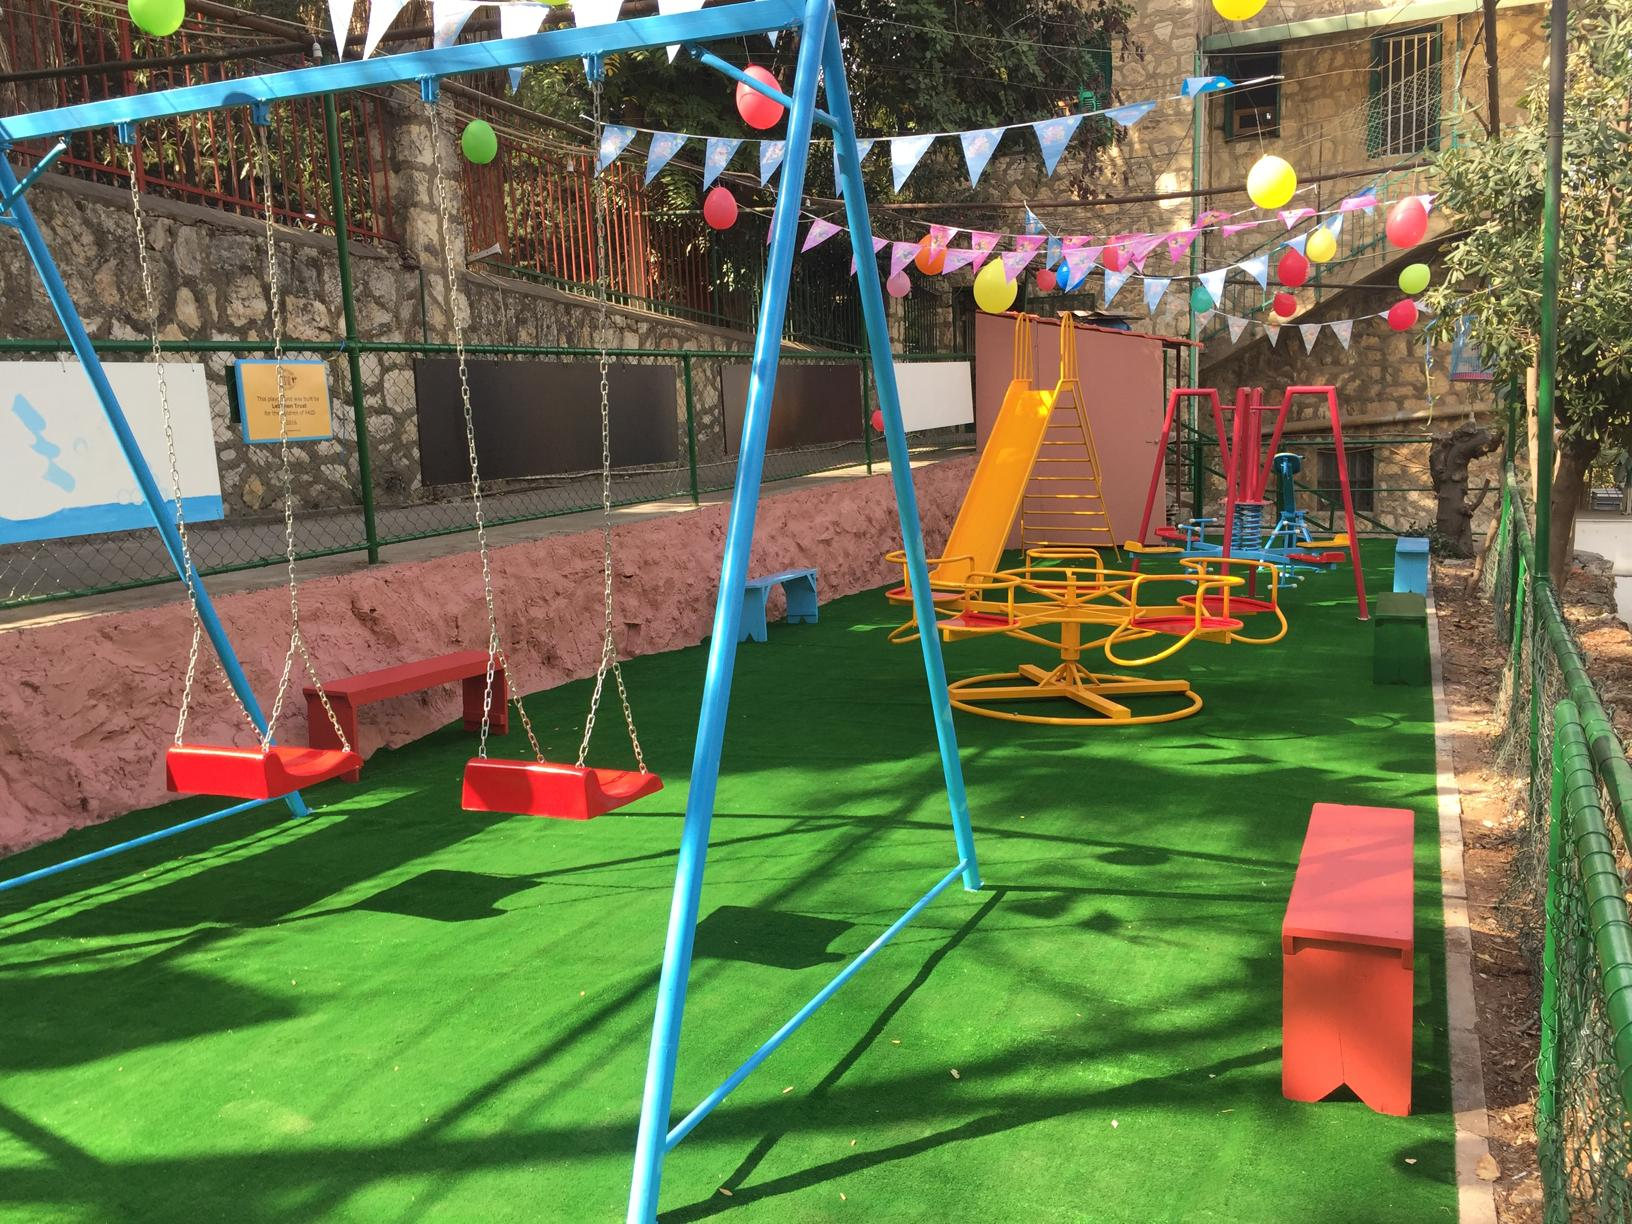 Lebanon Trust cleaned up and prepared the area, and bought and installed the new playground equipment.